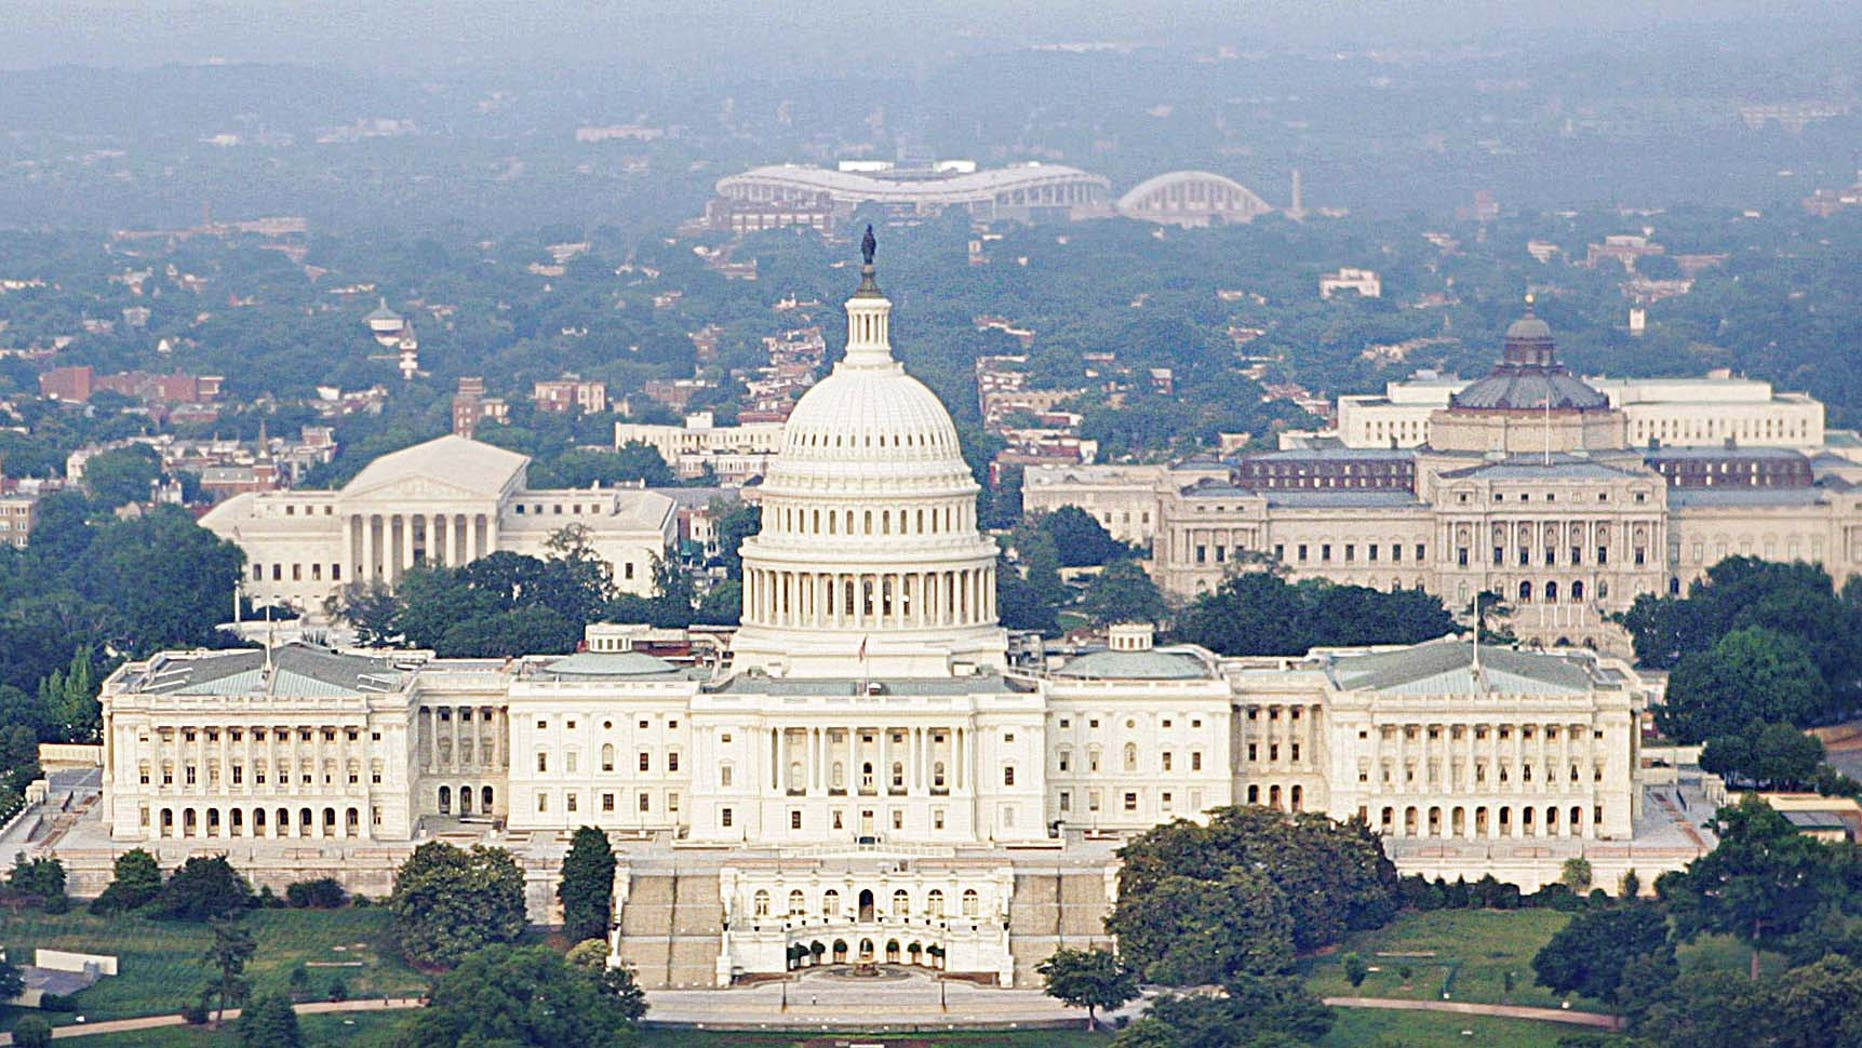 The United States Capitol, center, the Capitol Reflecting Pool, foreground, the U.S. Supreme Court.